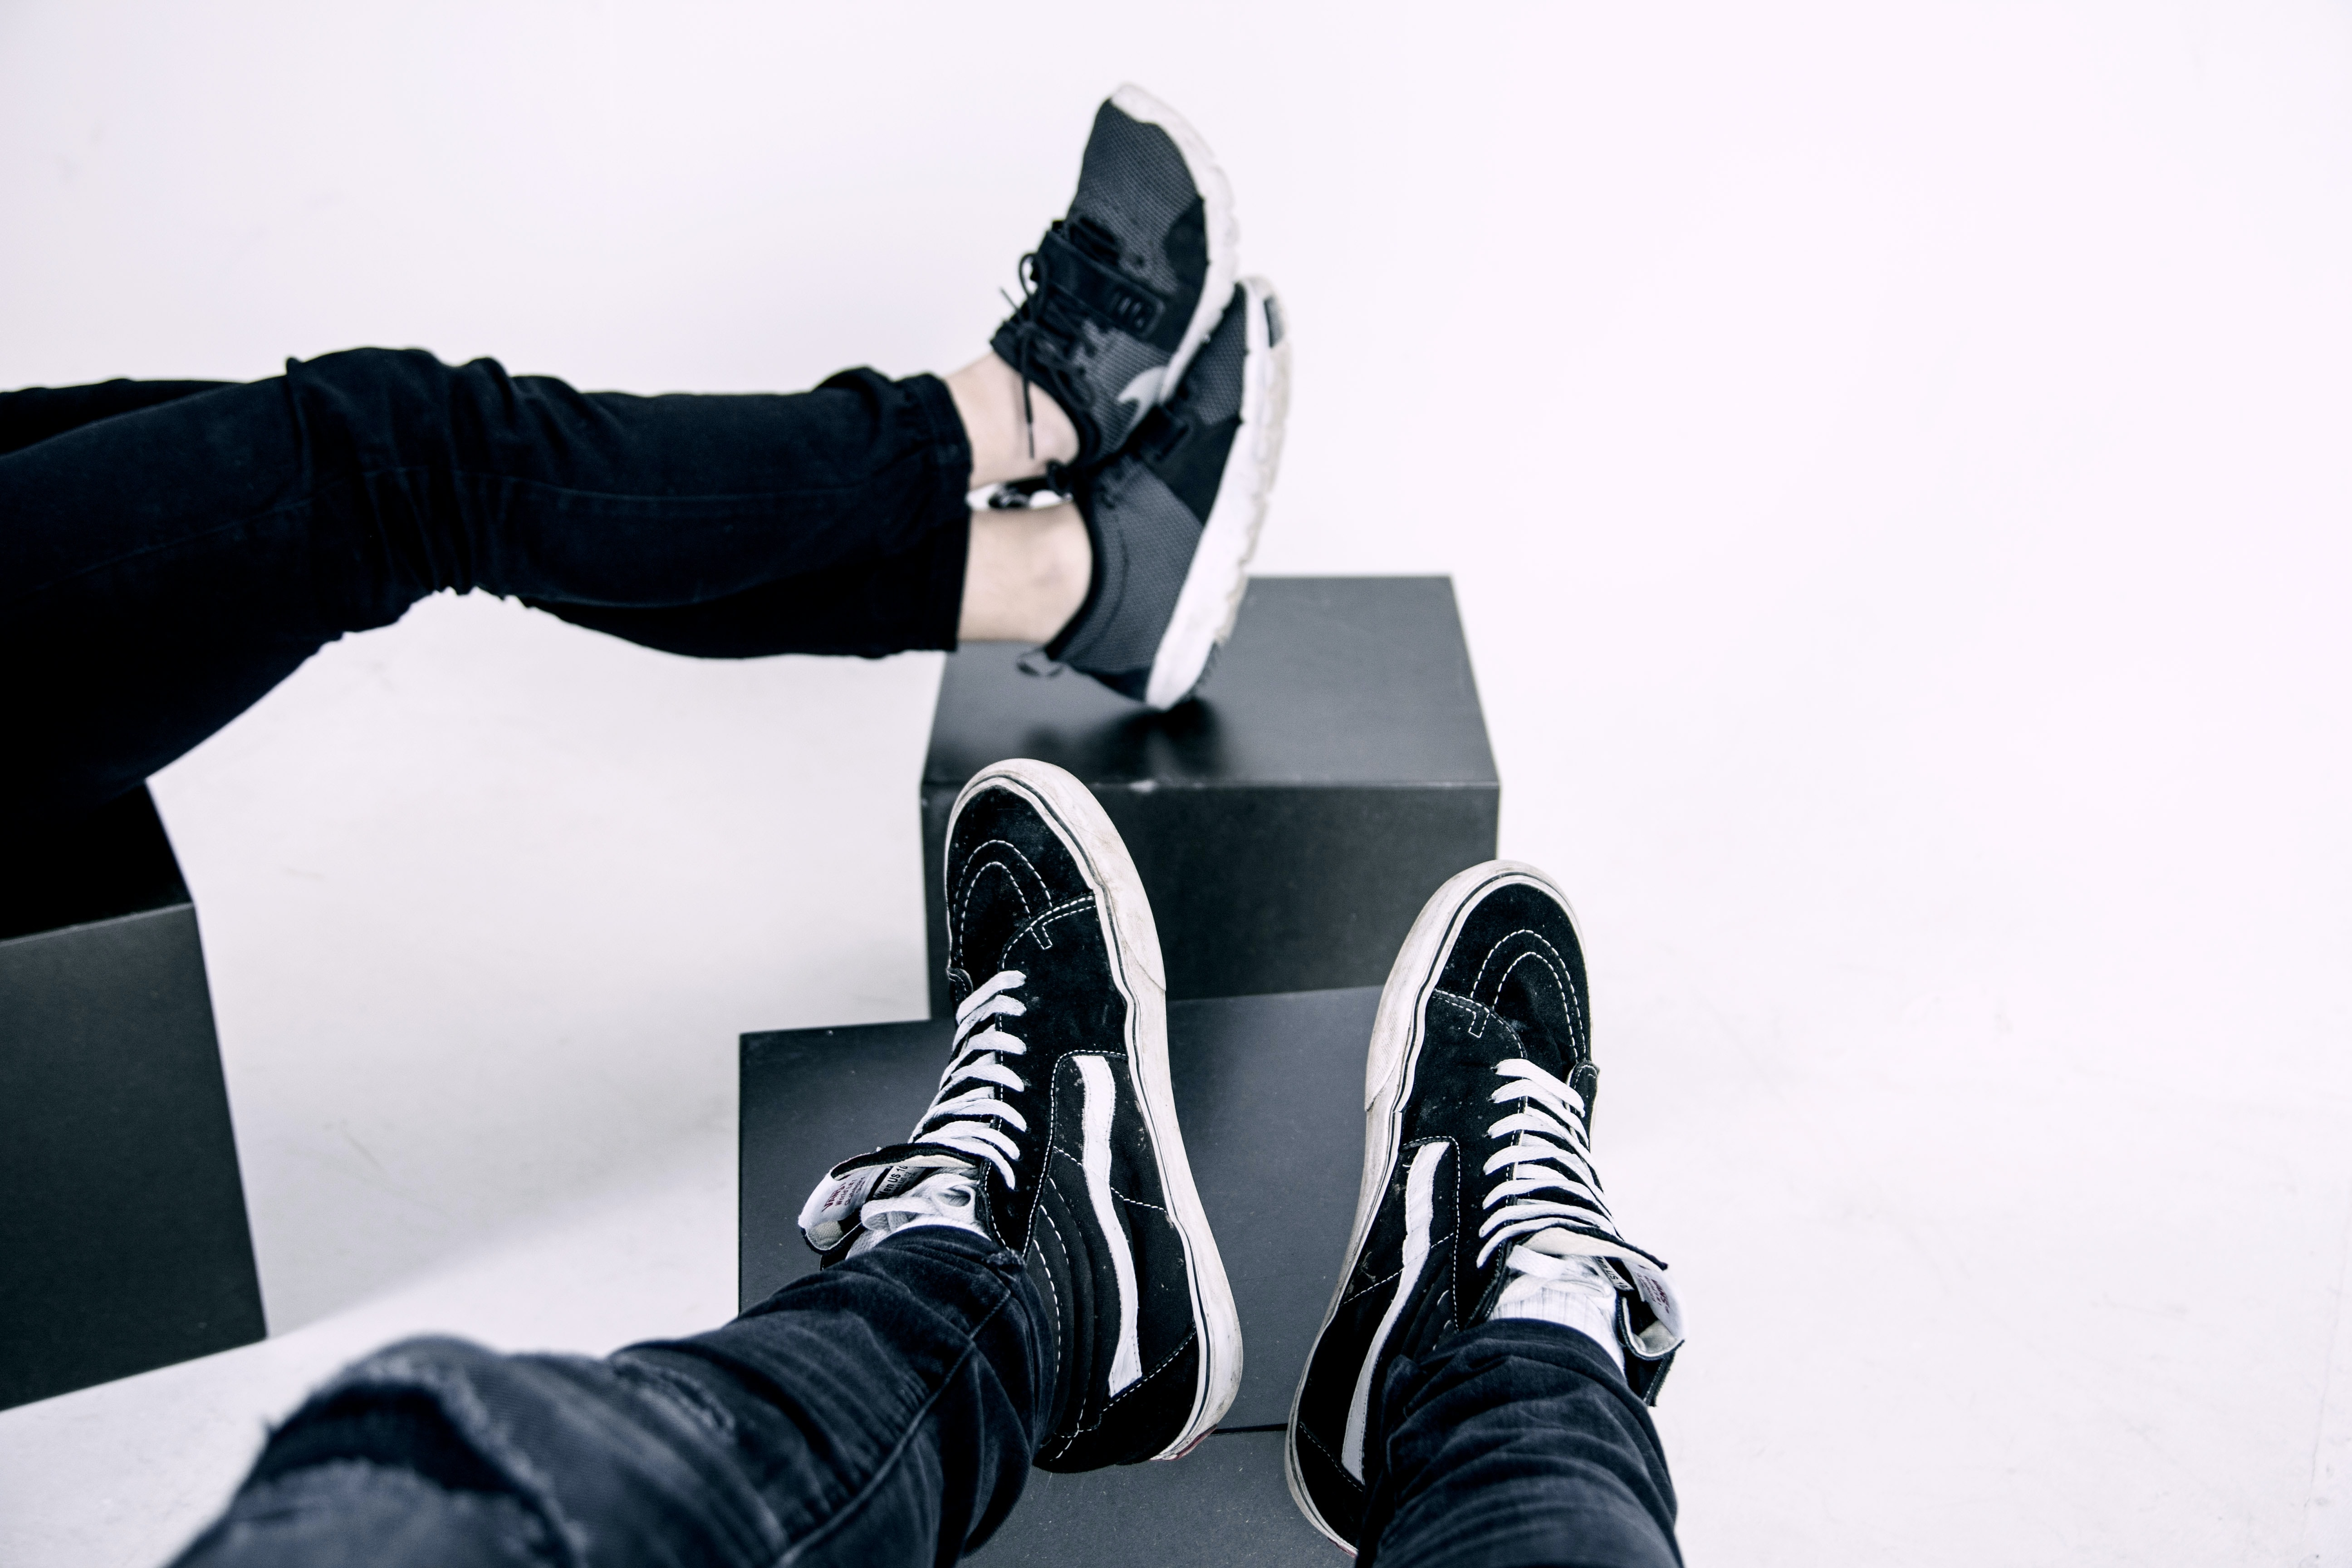 Two people in sneakers sitting with their legs on black cubes